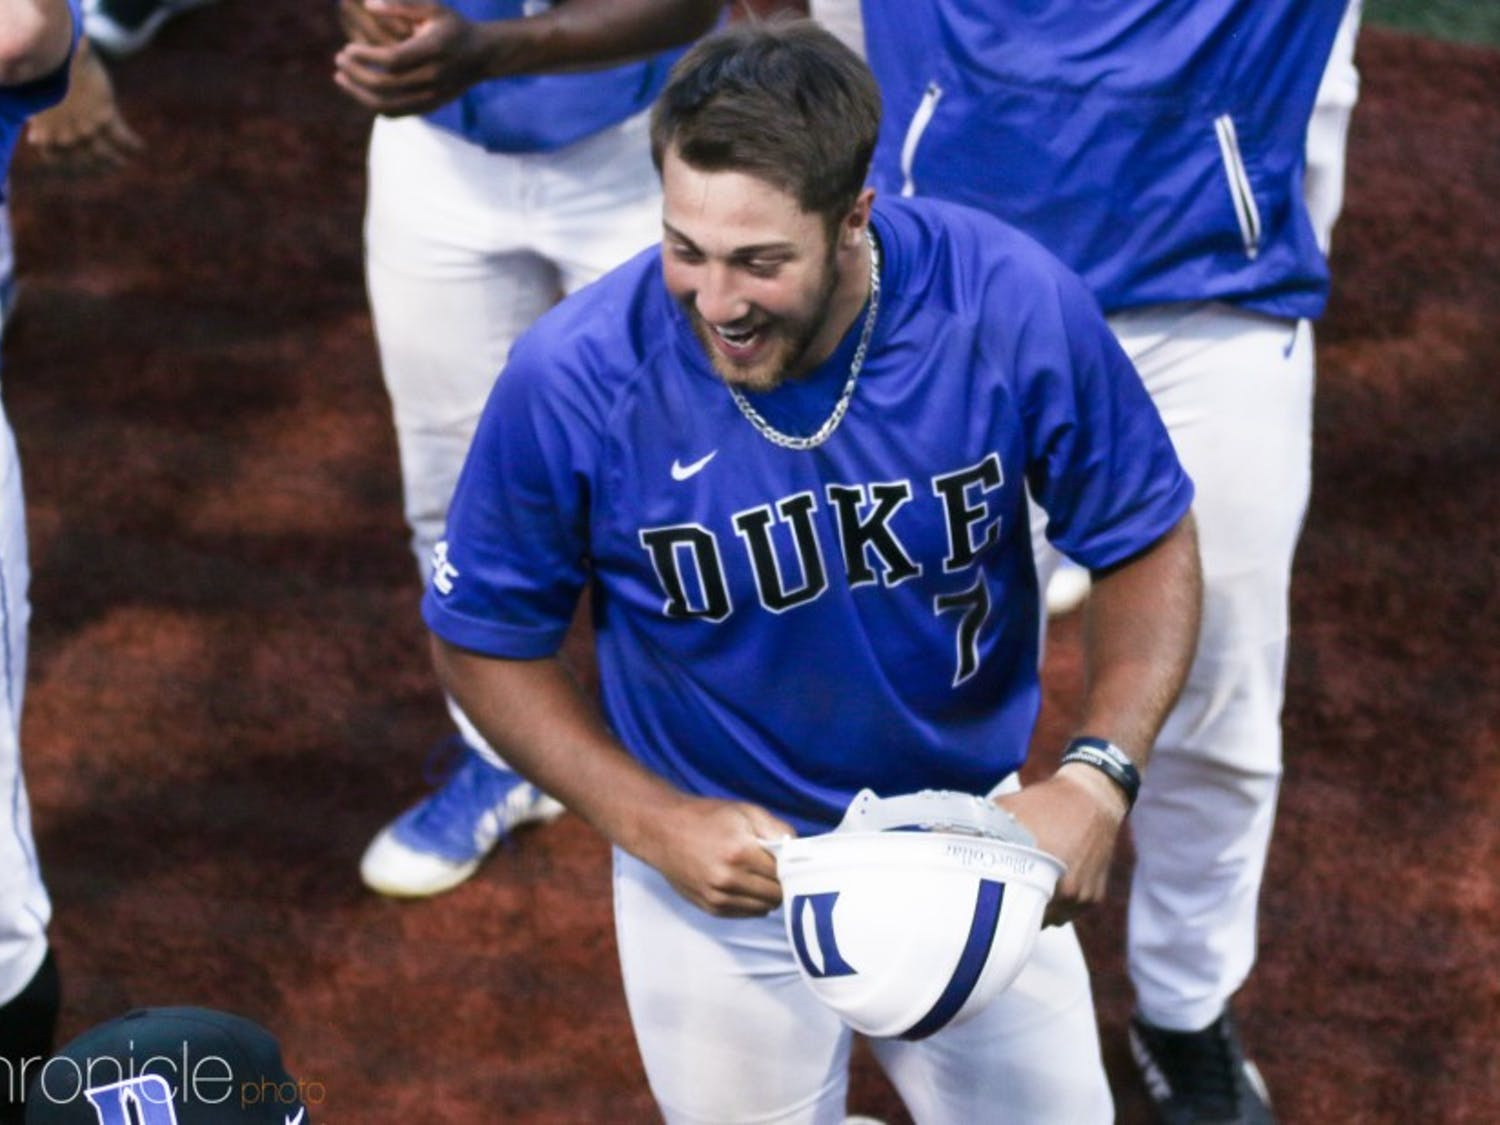 Duke trailed in each of its Athens Regional contests, despite going 4-1 this weekend.